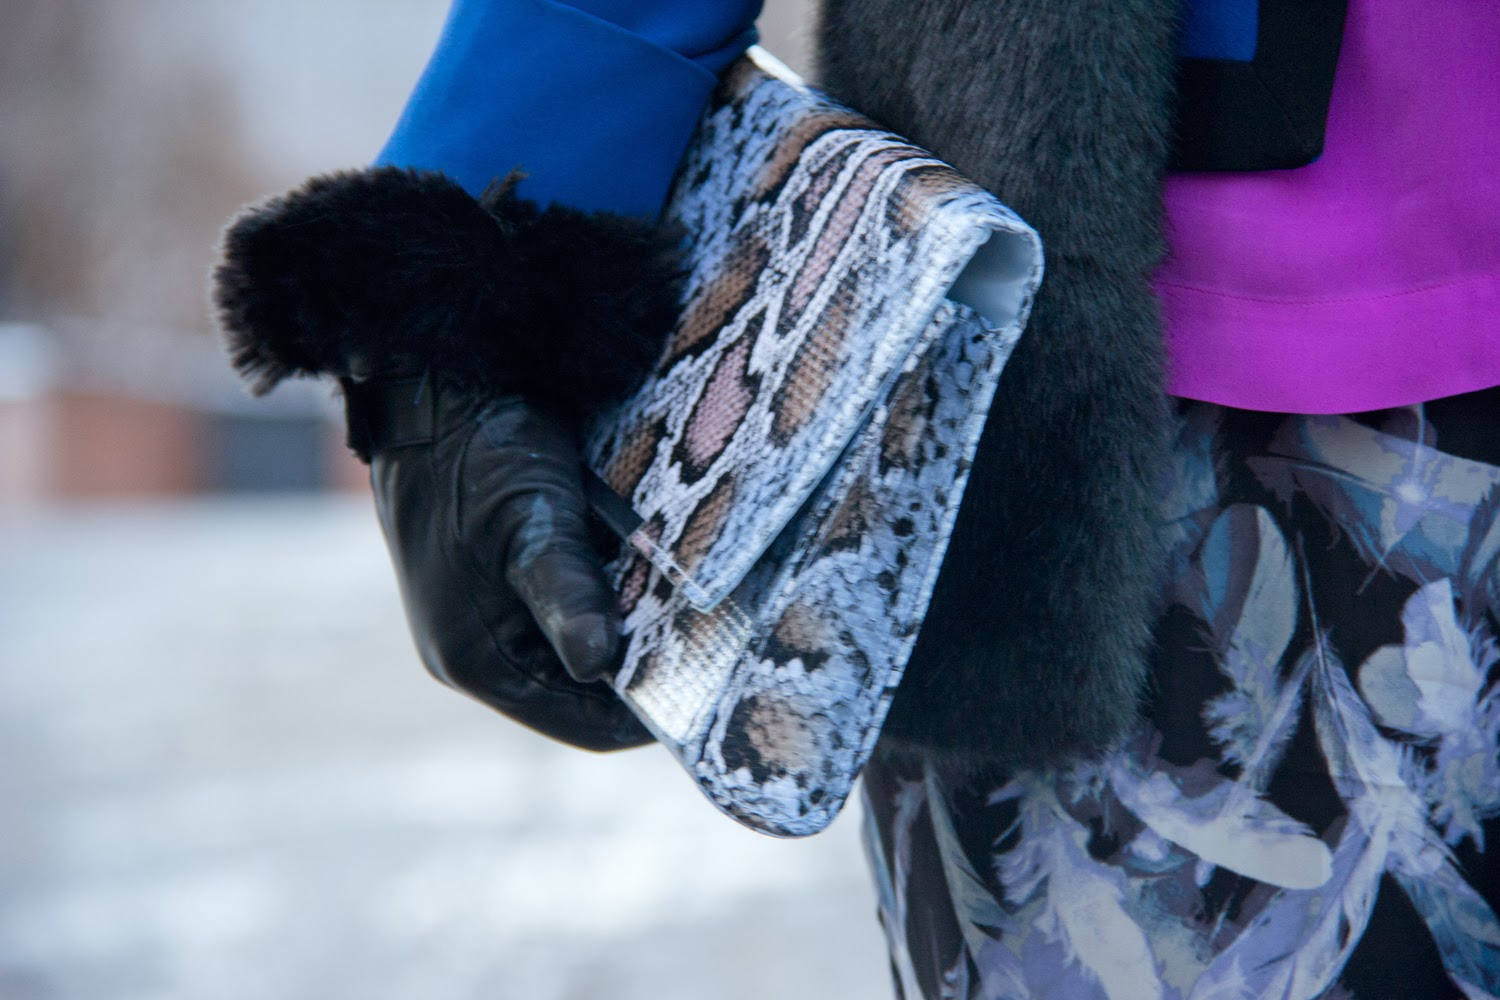 Snake-Skin-Print-Clutch, Lechateau-Black-Gloves, Faux-Fur-Vest